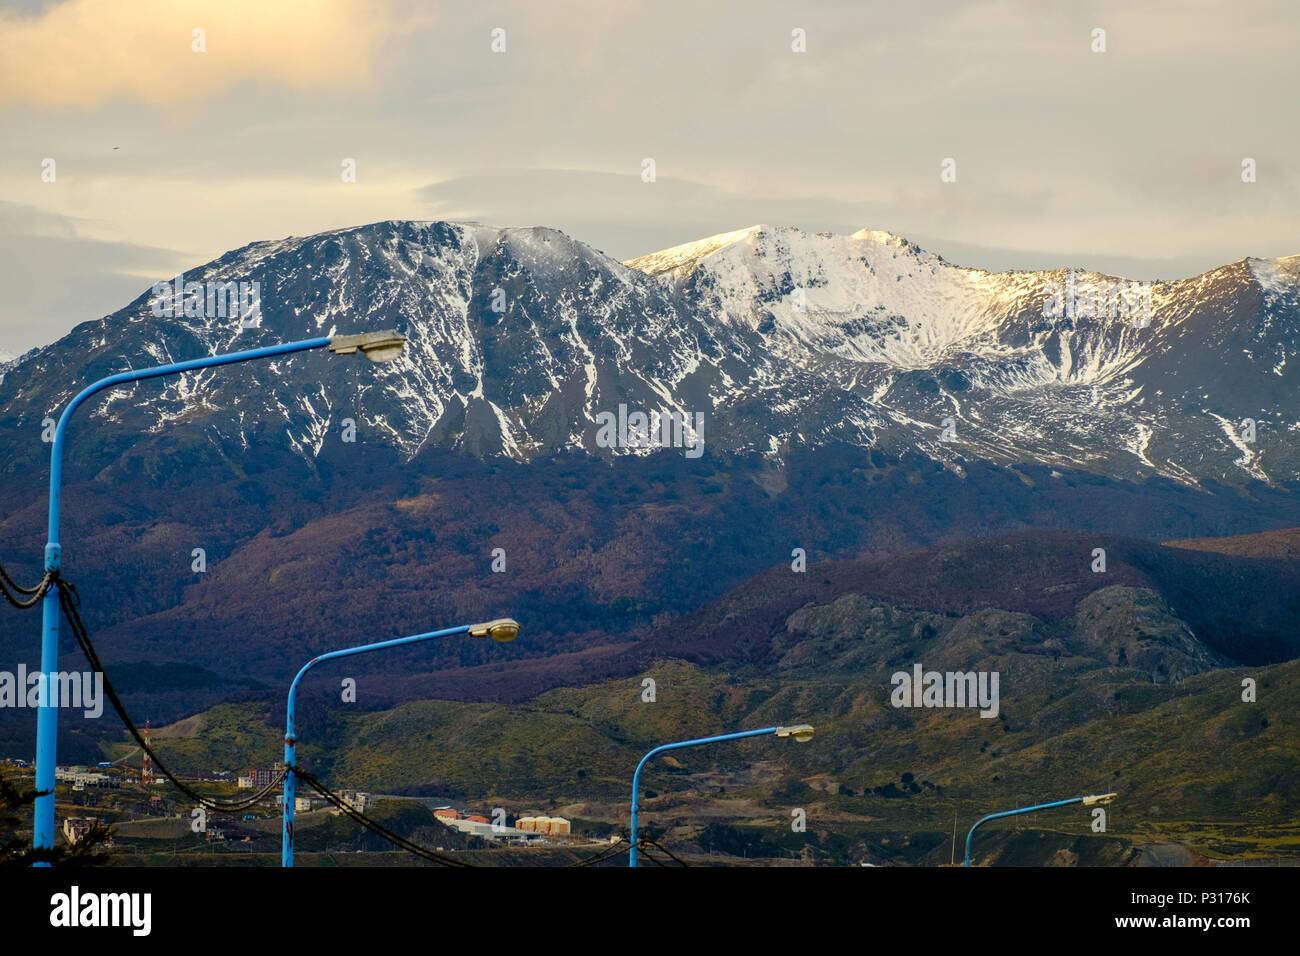 Blue street lights are standing above the streets of Ushuaia. In the background, the Martial mountain range received some fresh snow. Stock Photo